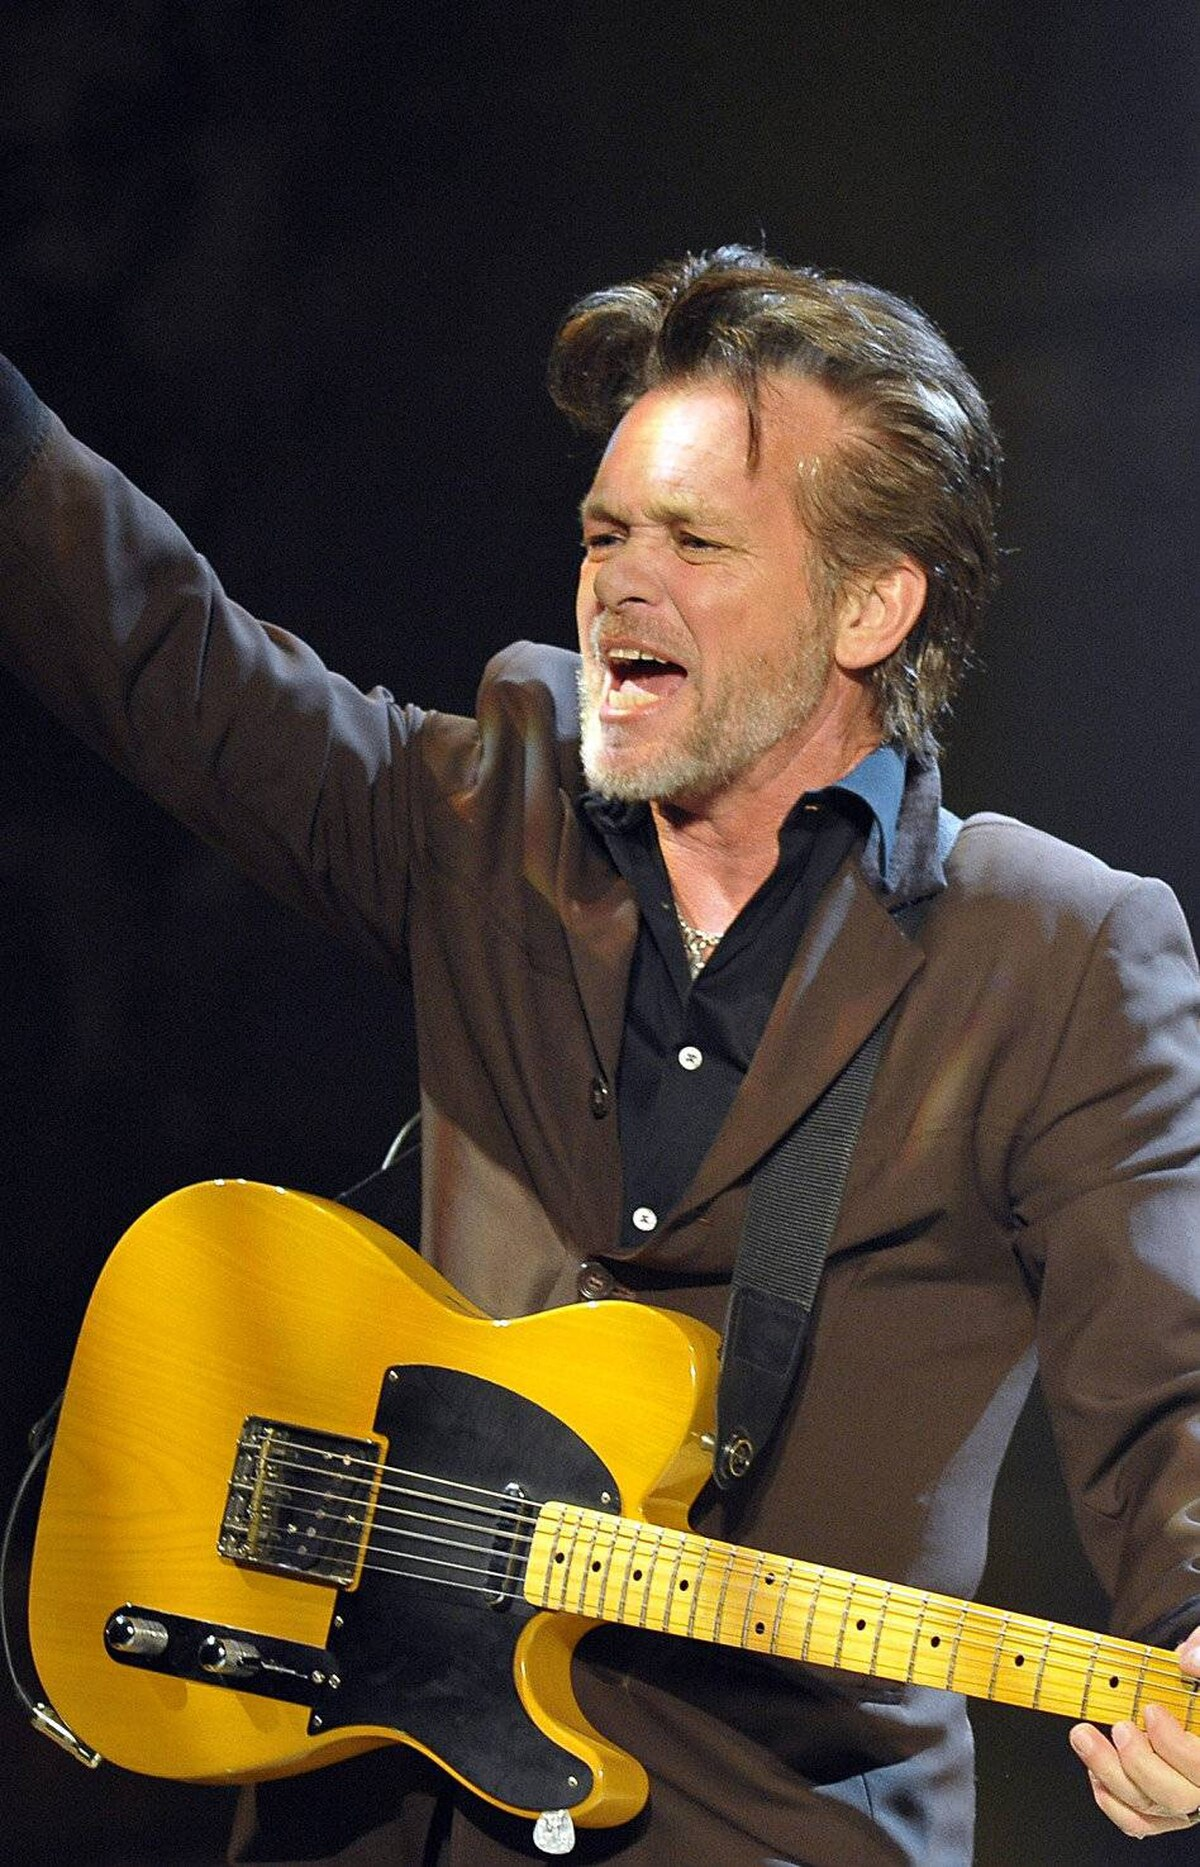 Of John Mellencamp's five kids, his firstborn got the most mainstream name: Michelle. He named the four that followed Teddi Jo, Justice, Hud and Speck Wildhorse.